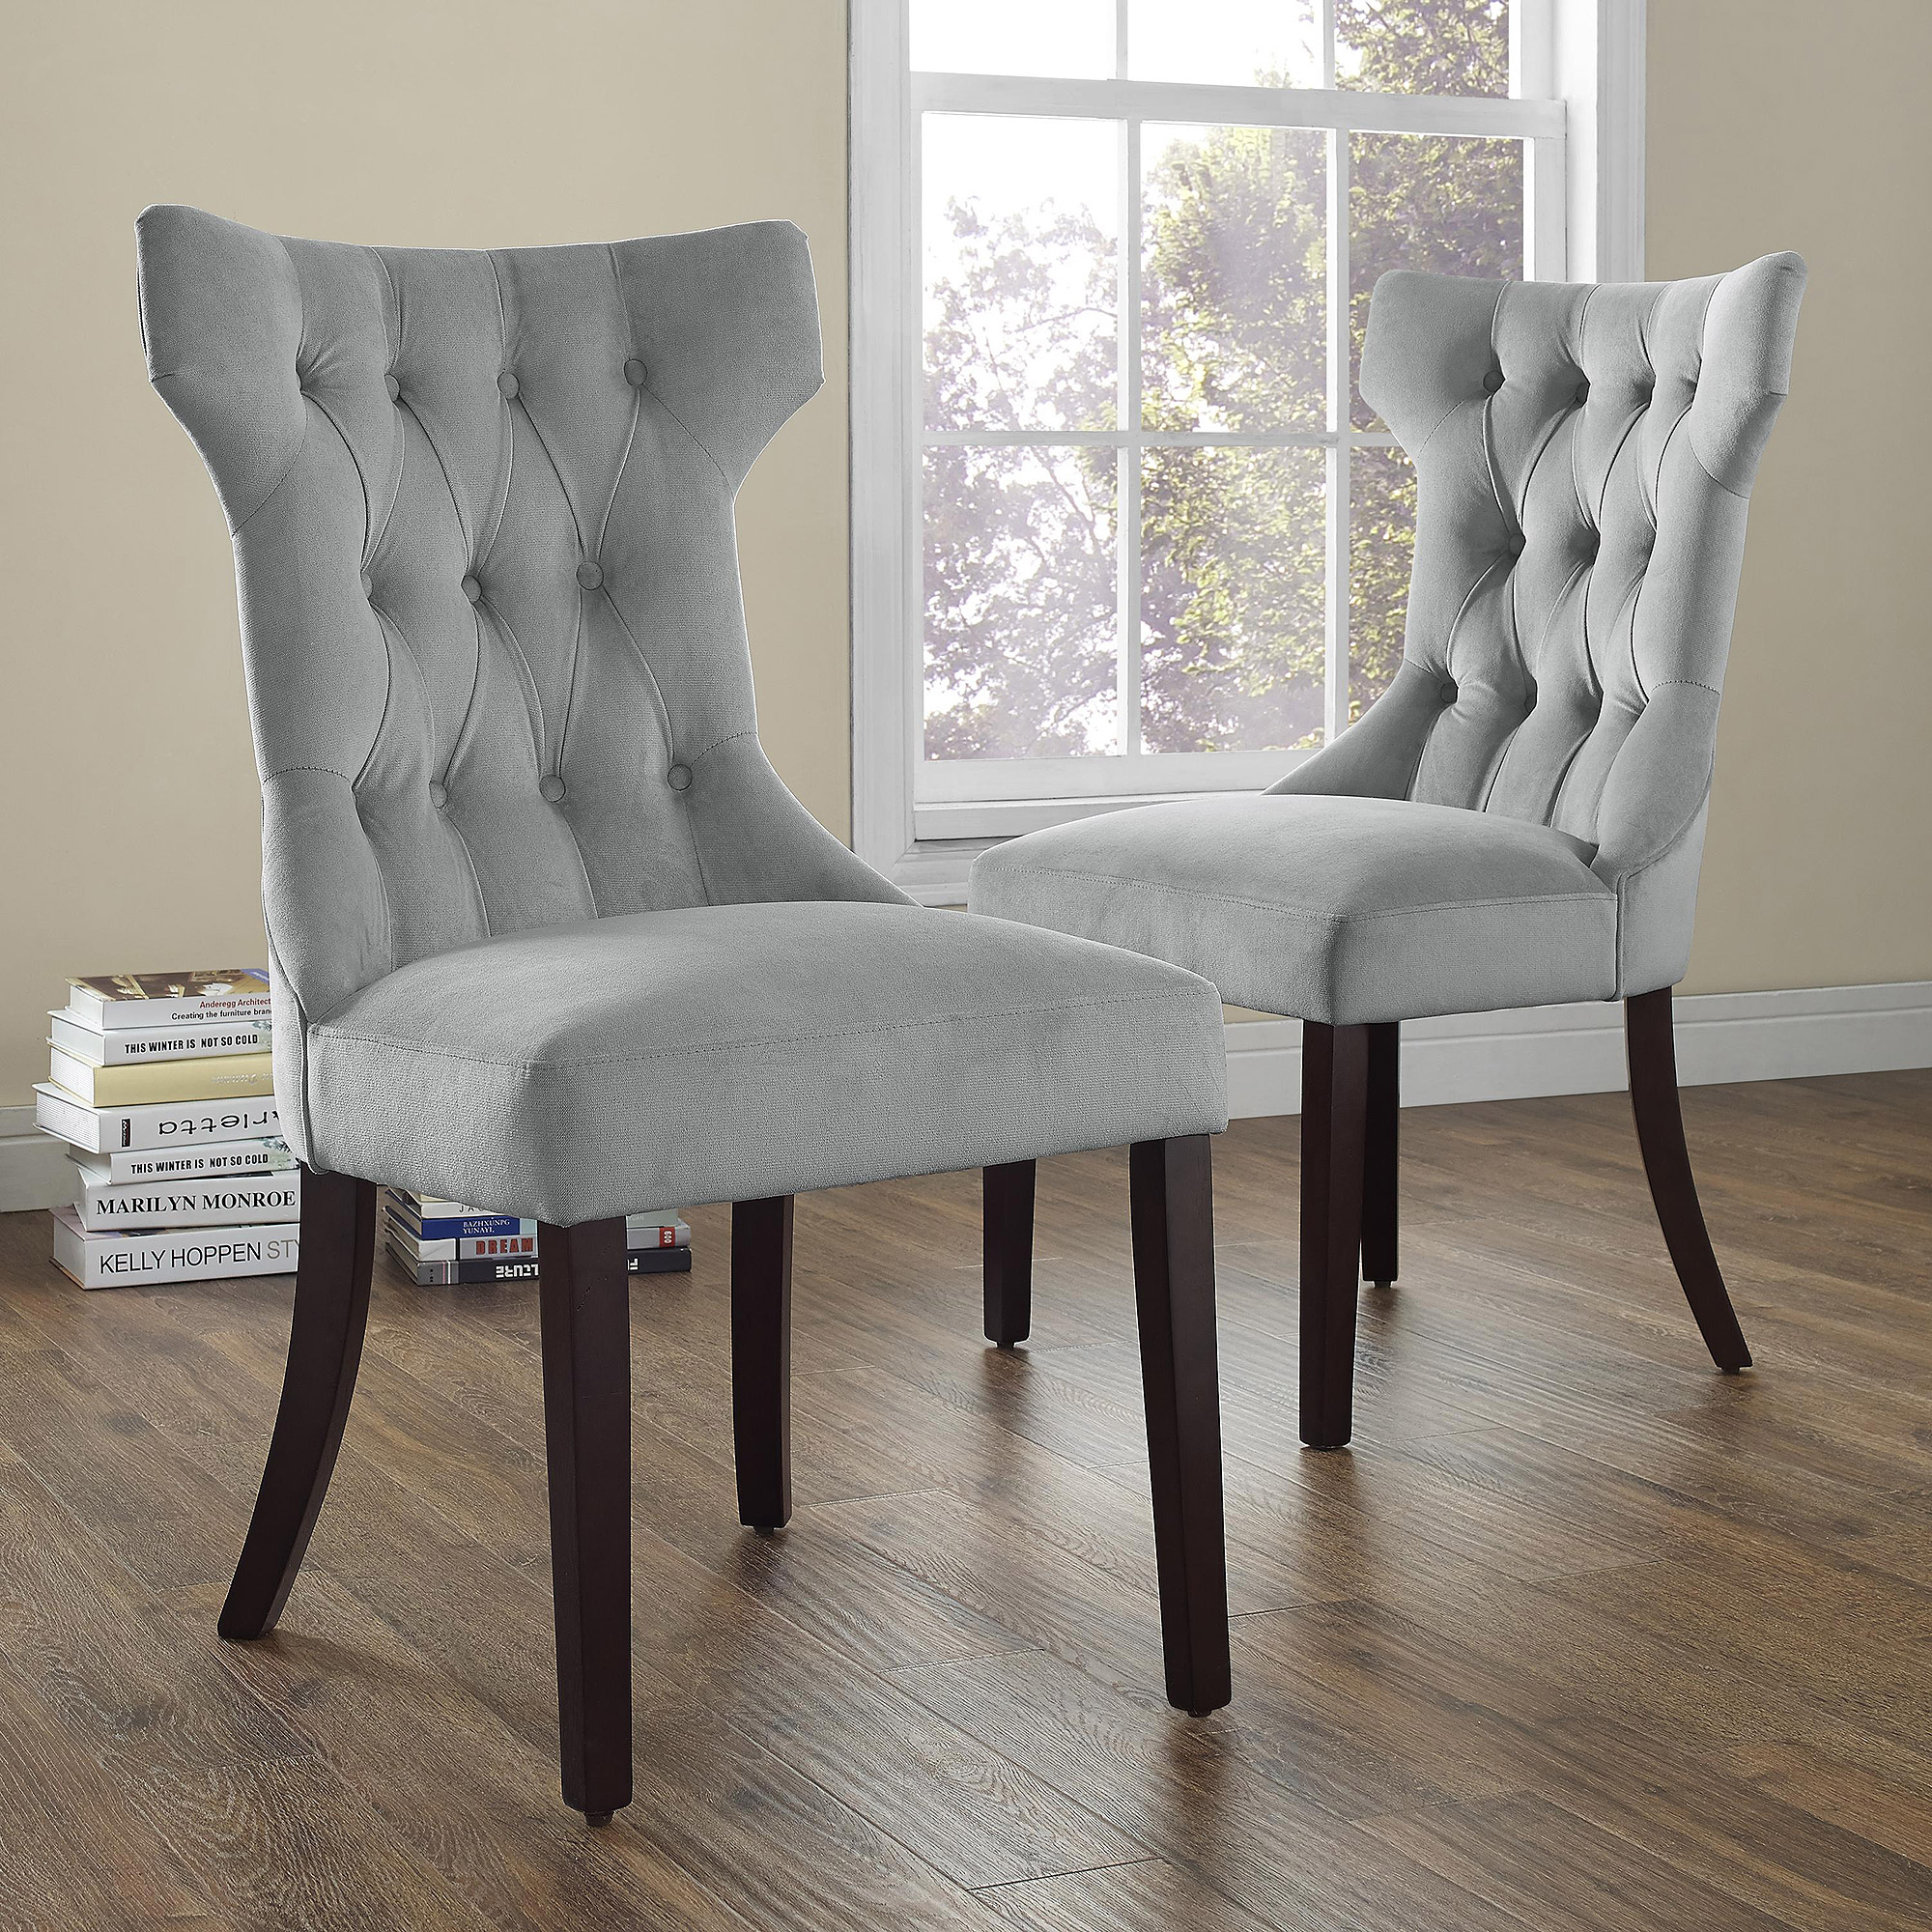 Dorel Living Clairborne Tufted Upholestered Dining Chair, Set Of 2    Walmart.com